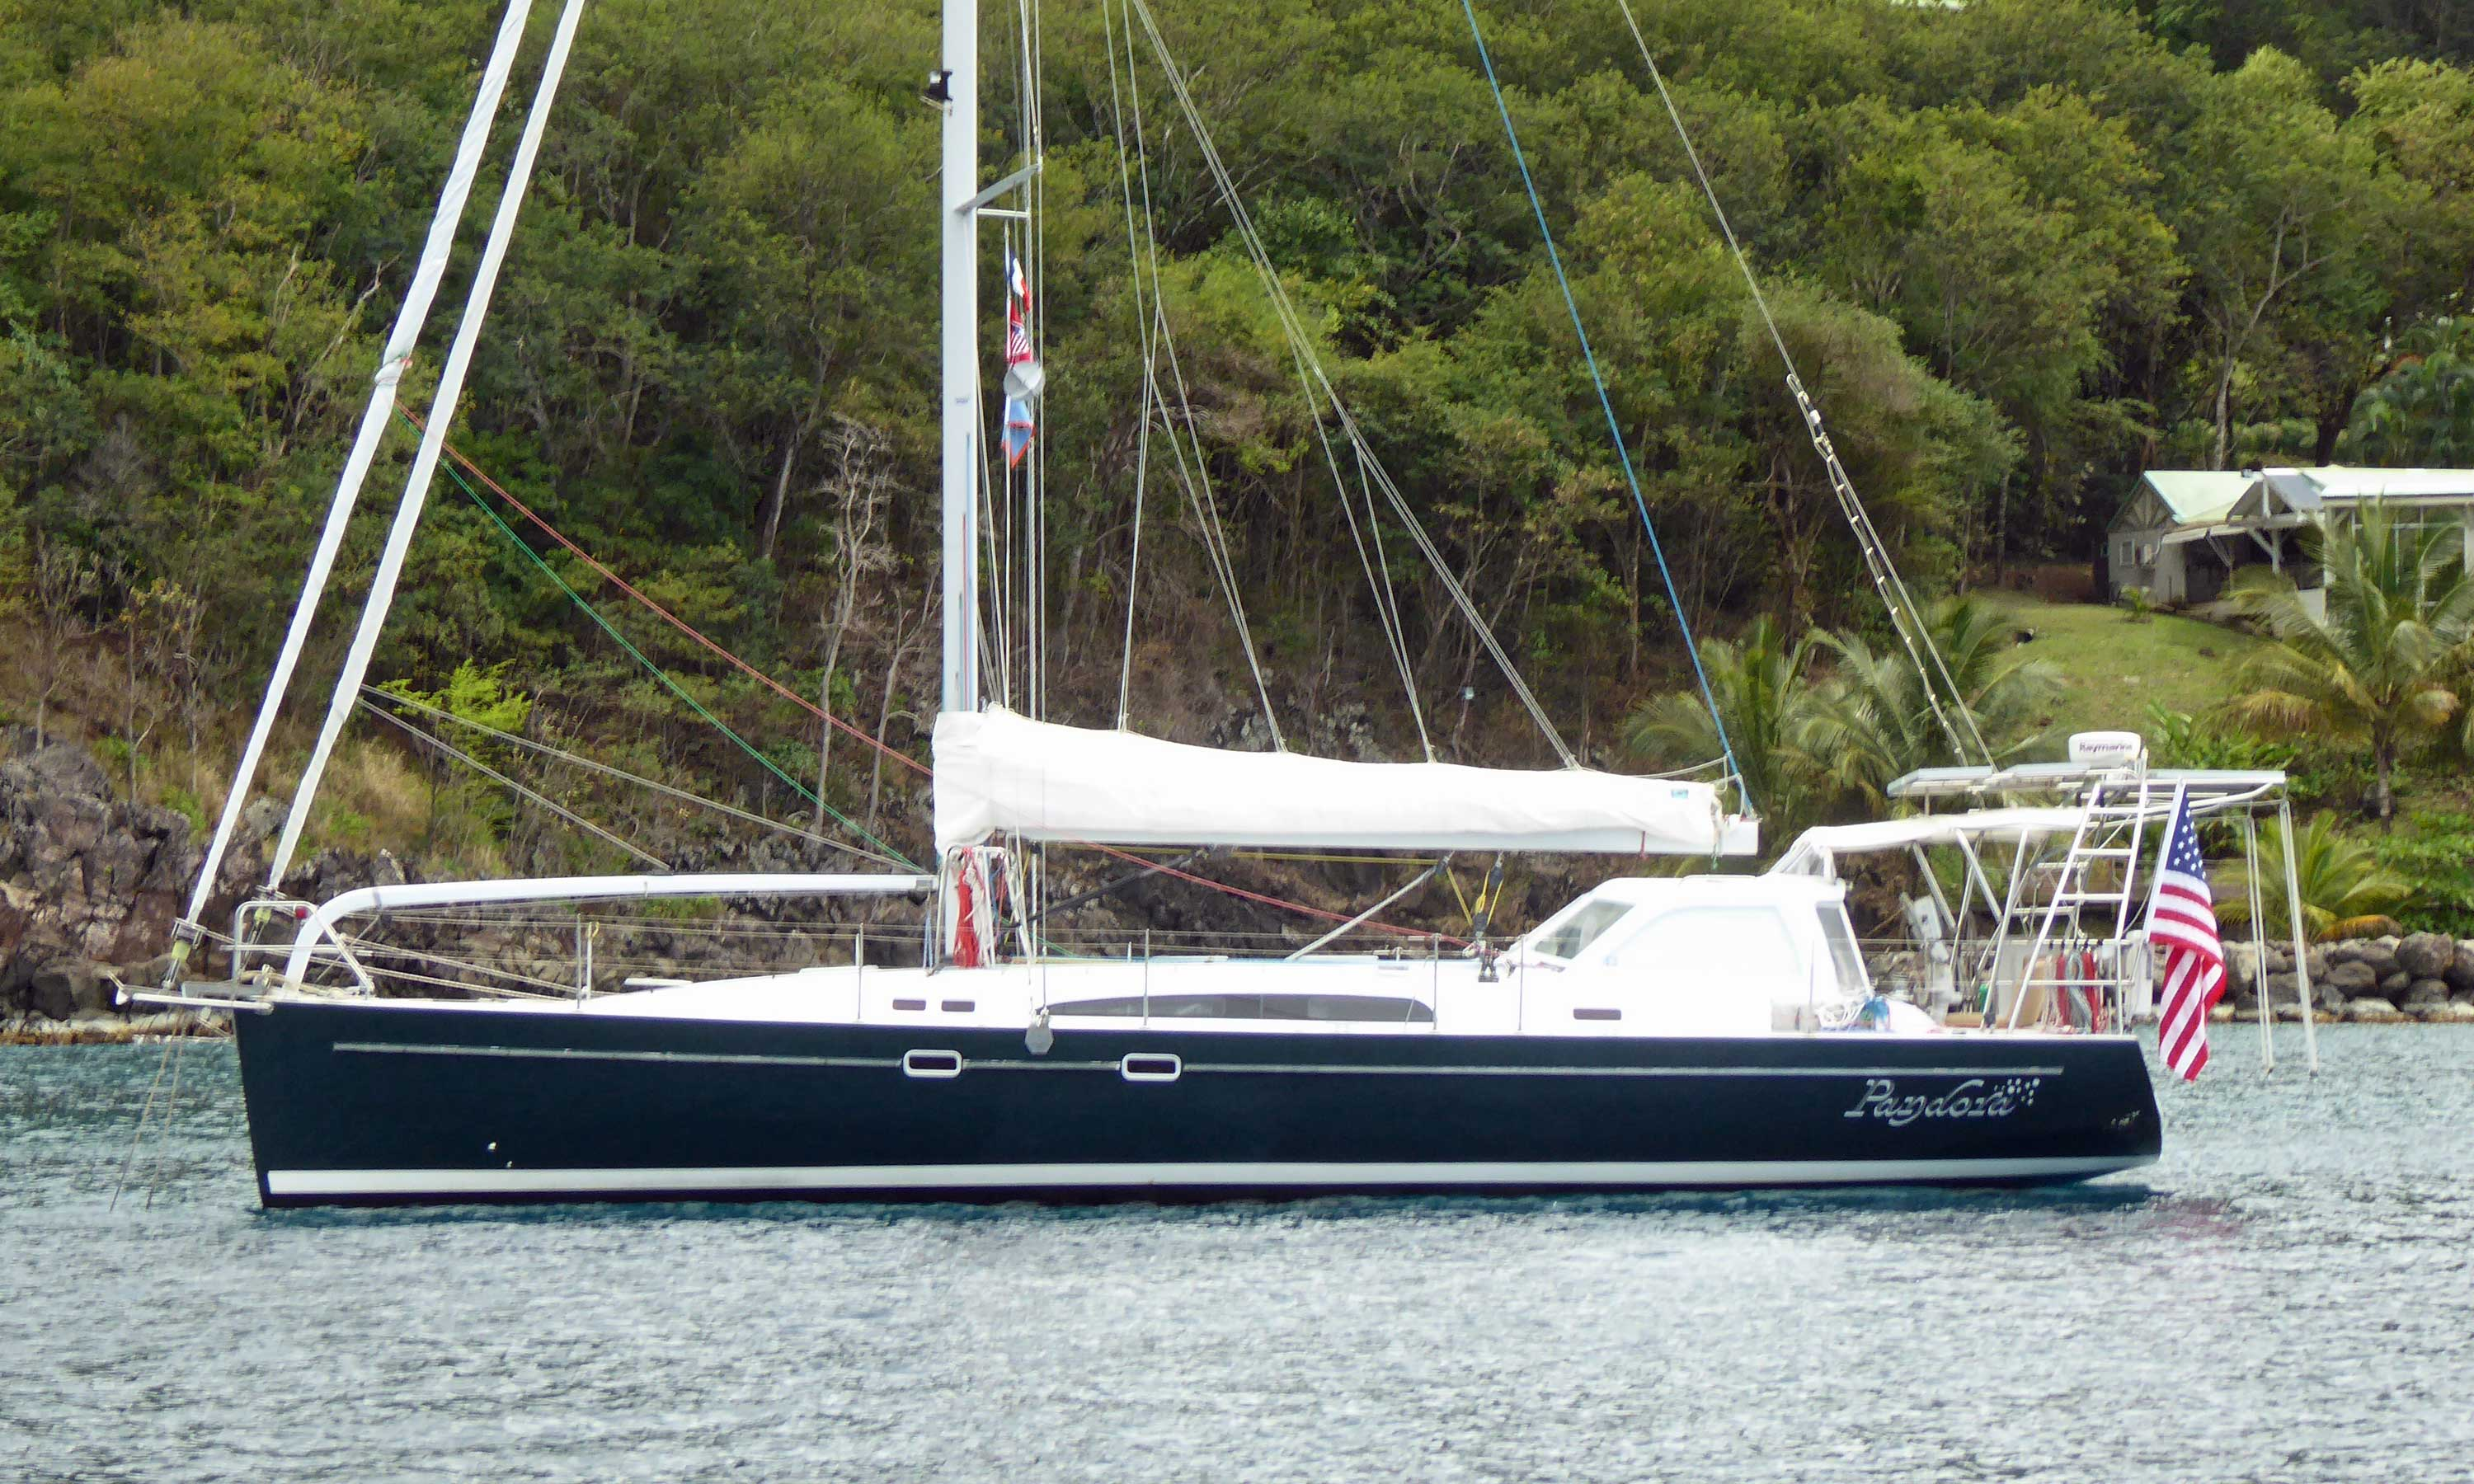 Aerodyne 47 performance cruising yacht